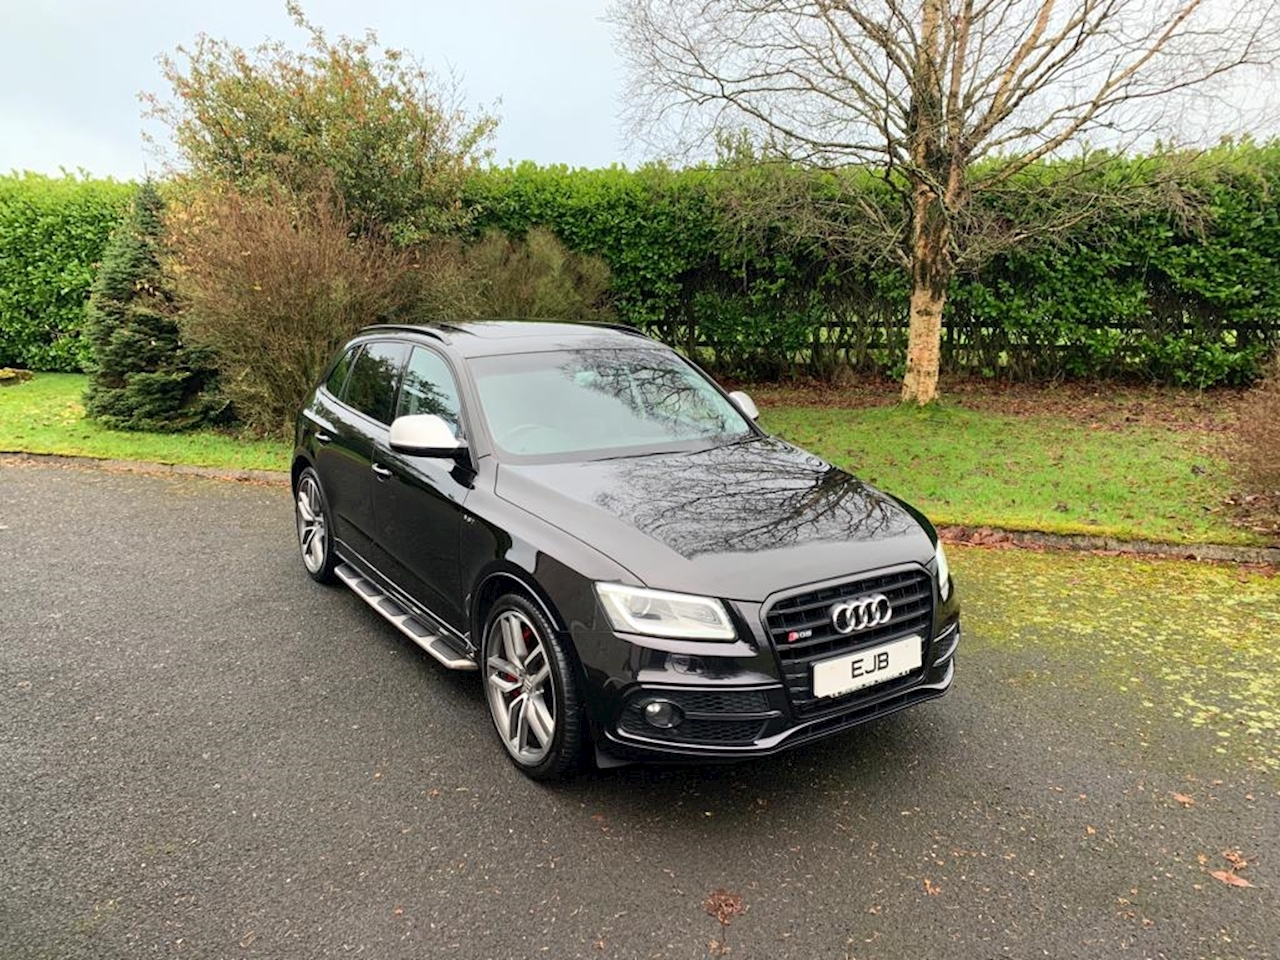 Audi Sq5 Plus Tdi Quattro 3.0 5dr Estate Automatic Diesel